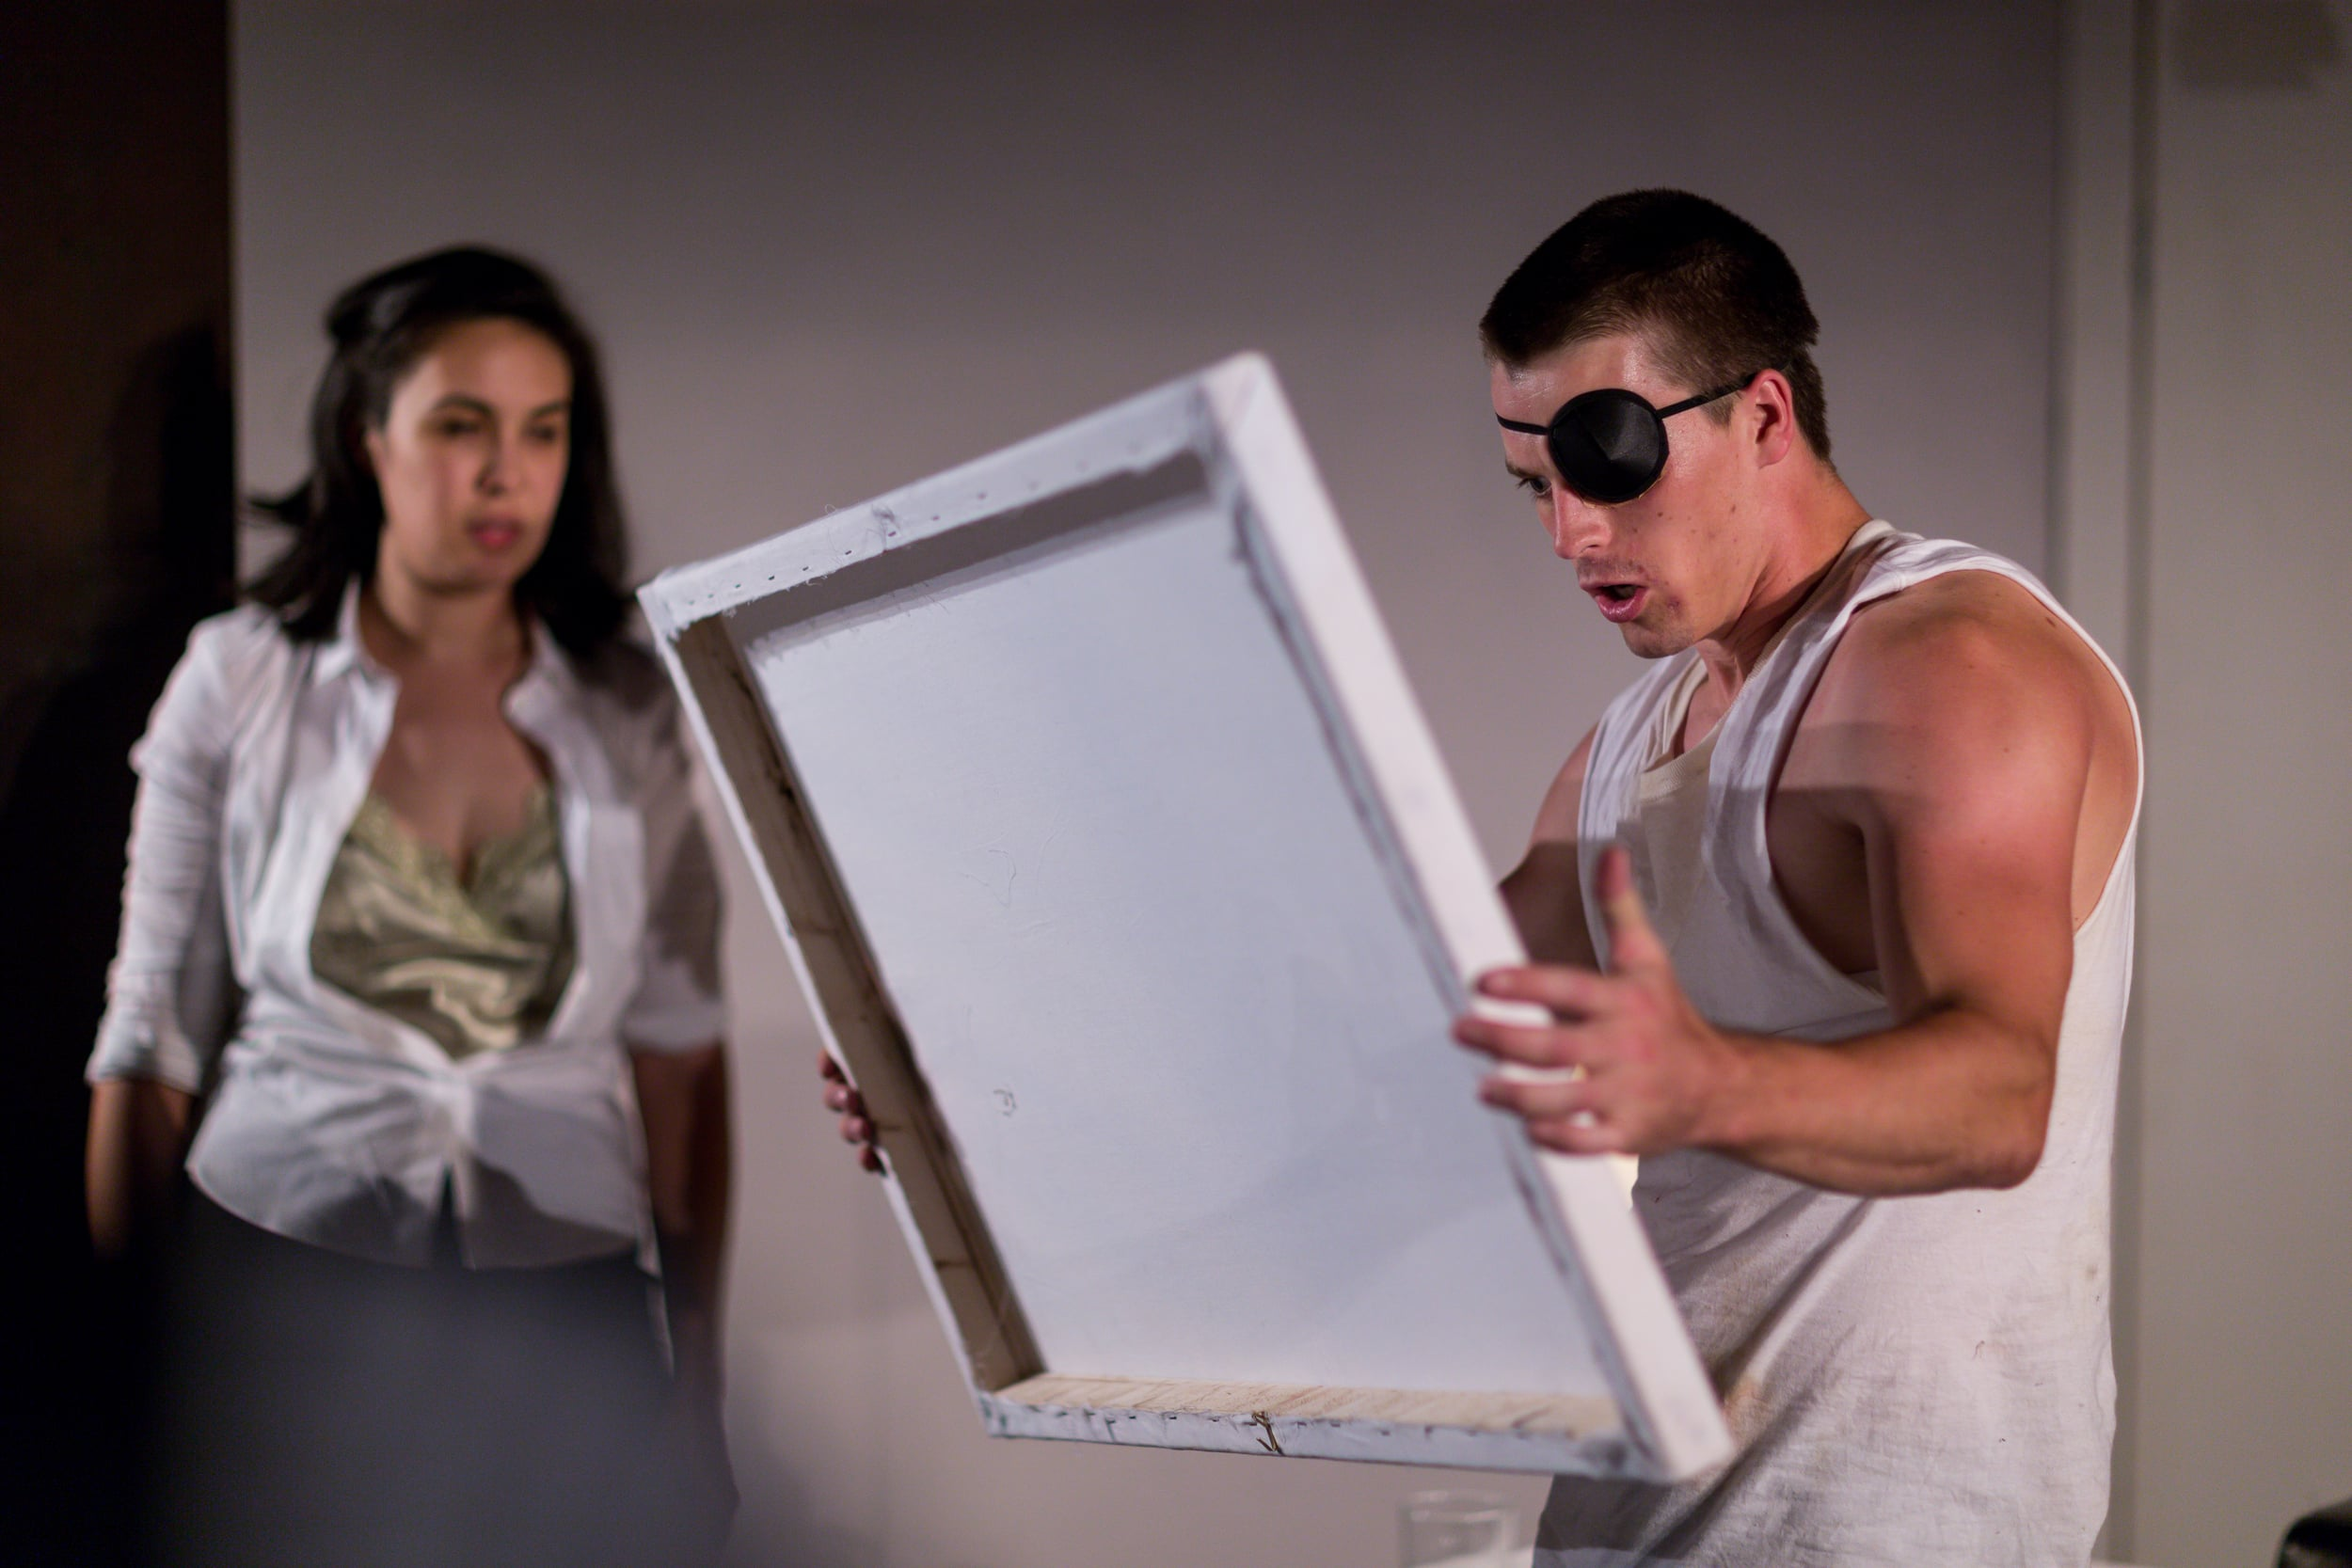 Joanna (Melissa deJesus) and Palmer (Michael Underhill) observe the masterpieces of Palmer's brother, Turner (Victor Shopov, unseen) (Photo Credit: Nile Scott Shots).